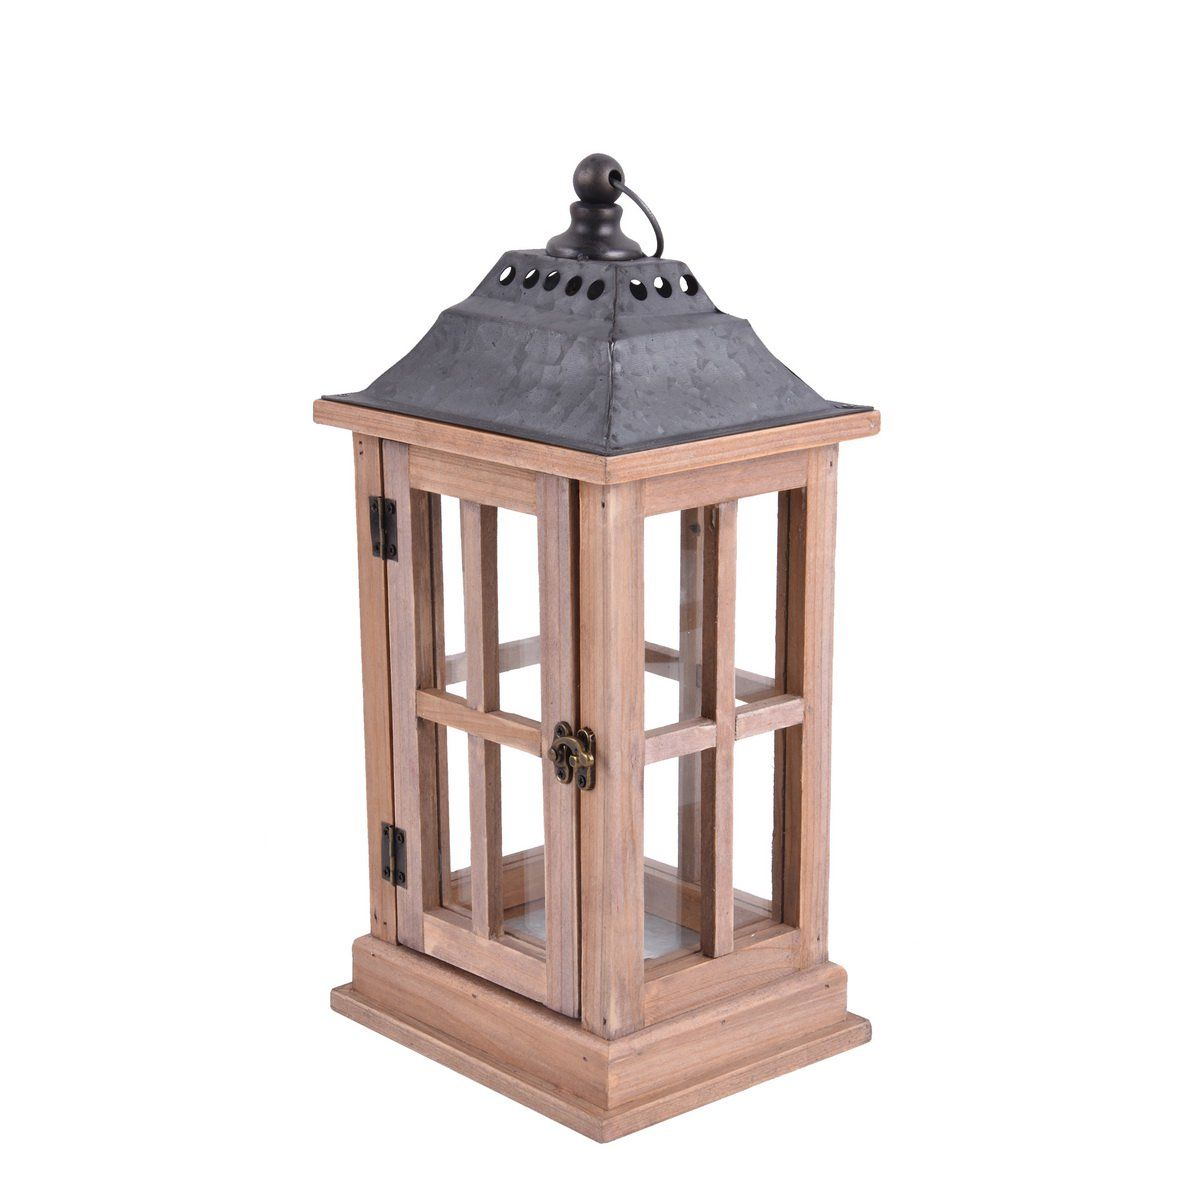 7220844bf2c5871ddcc69a8f4b5afbb8 - Better Homes And Gardens Farmhouse Large Lantern Rustic Finish